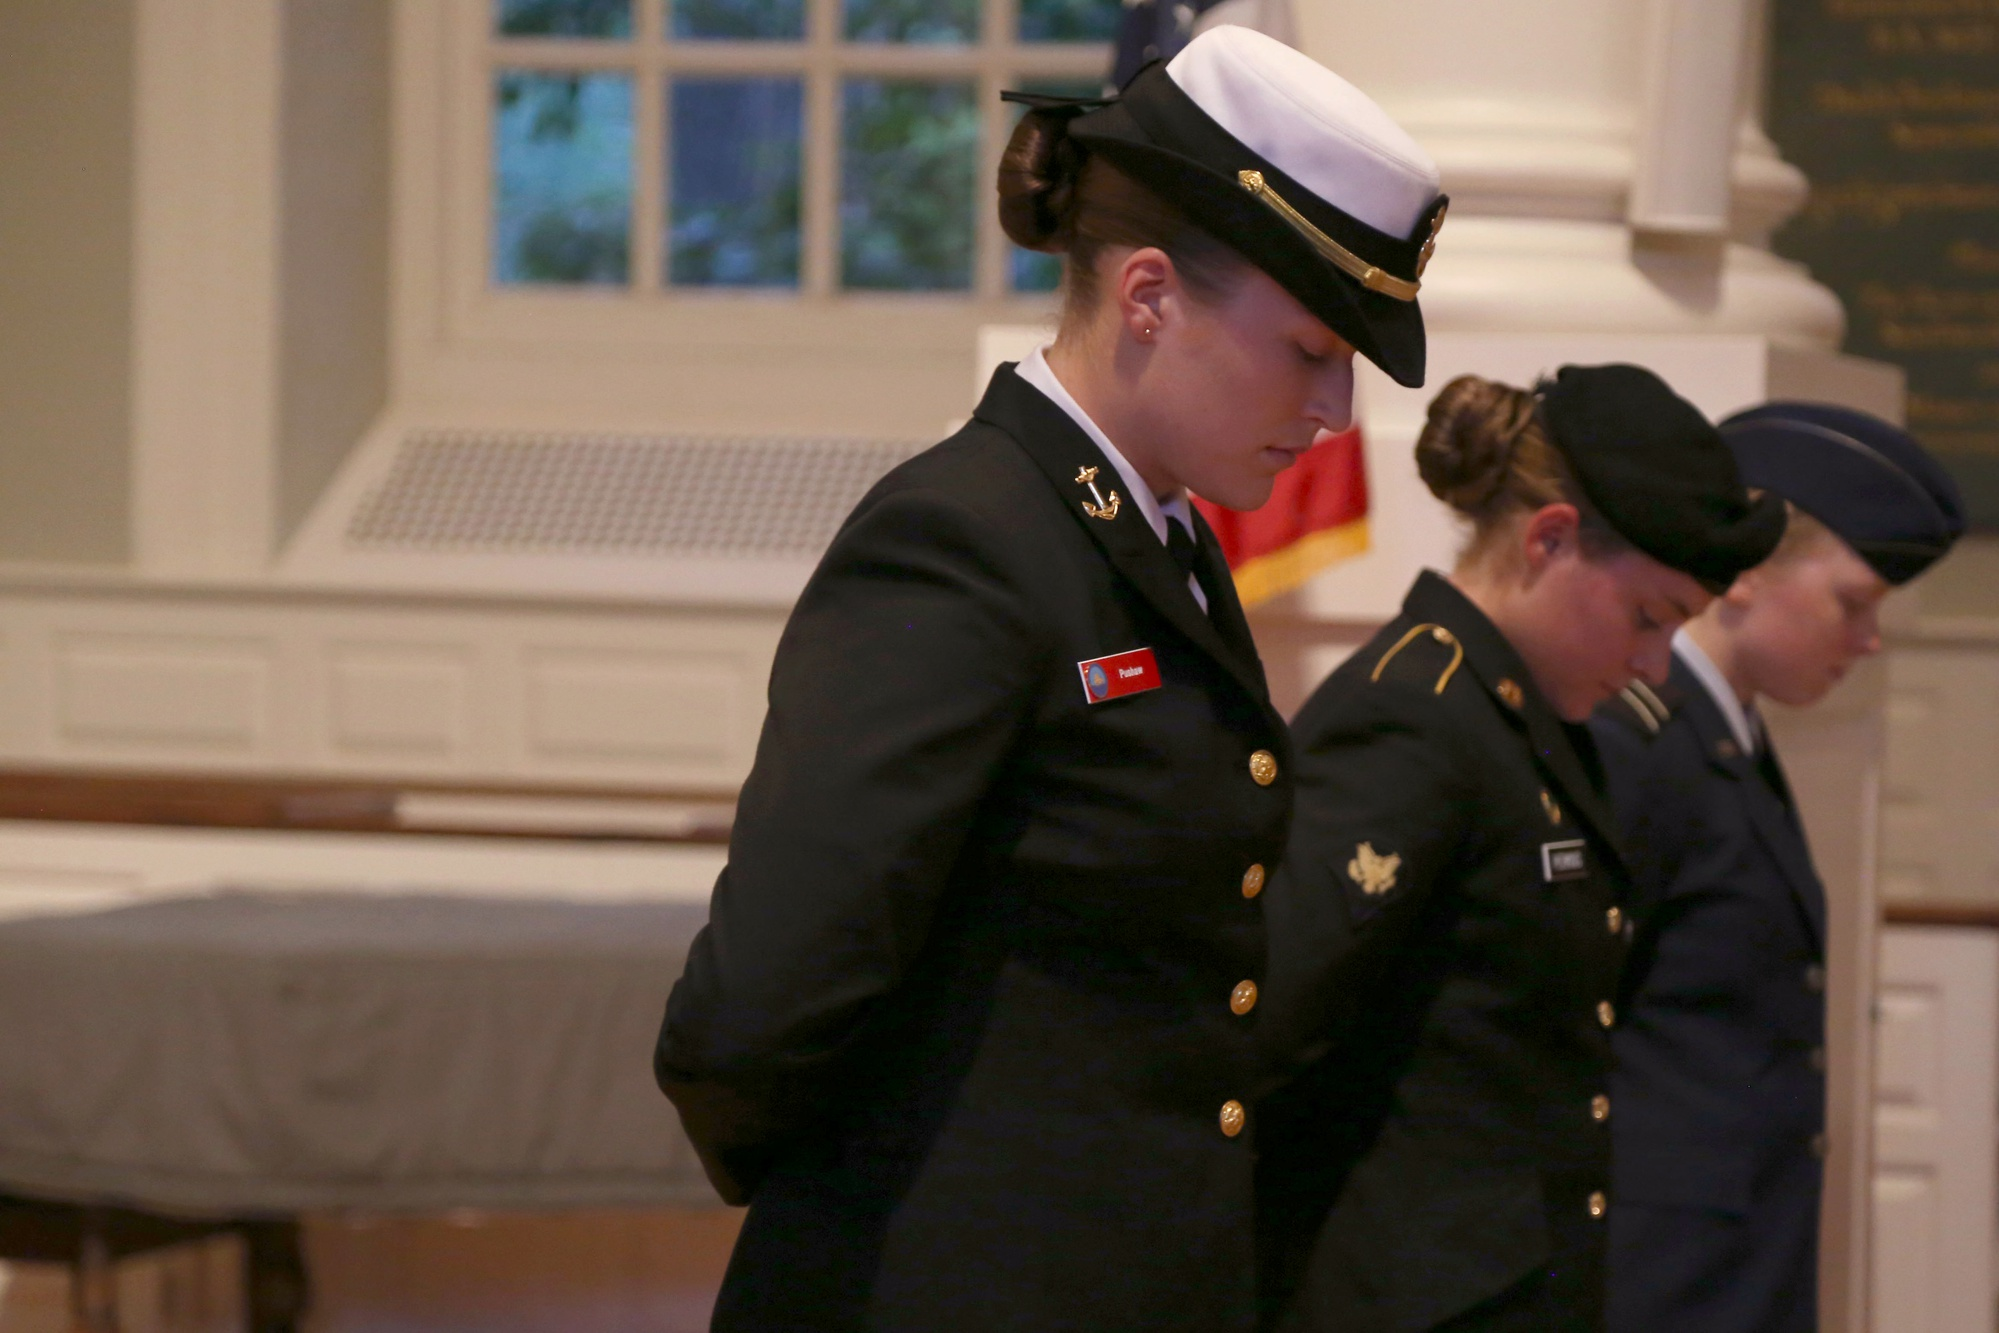 From left, Carolyn F. Pushaw '16, Lucy F. Perkins, and Kira R. Headrick '17 bow their heads during a 9/11 memorial service in 2014.